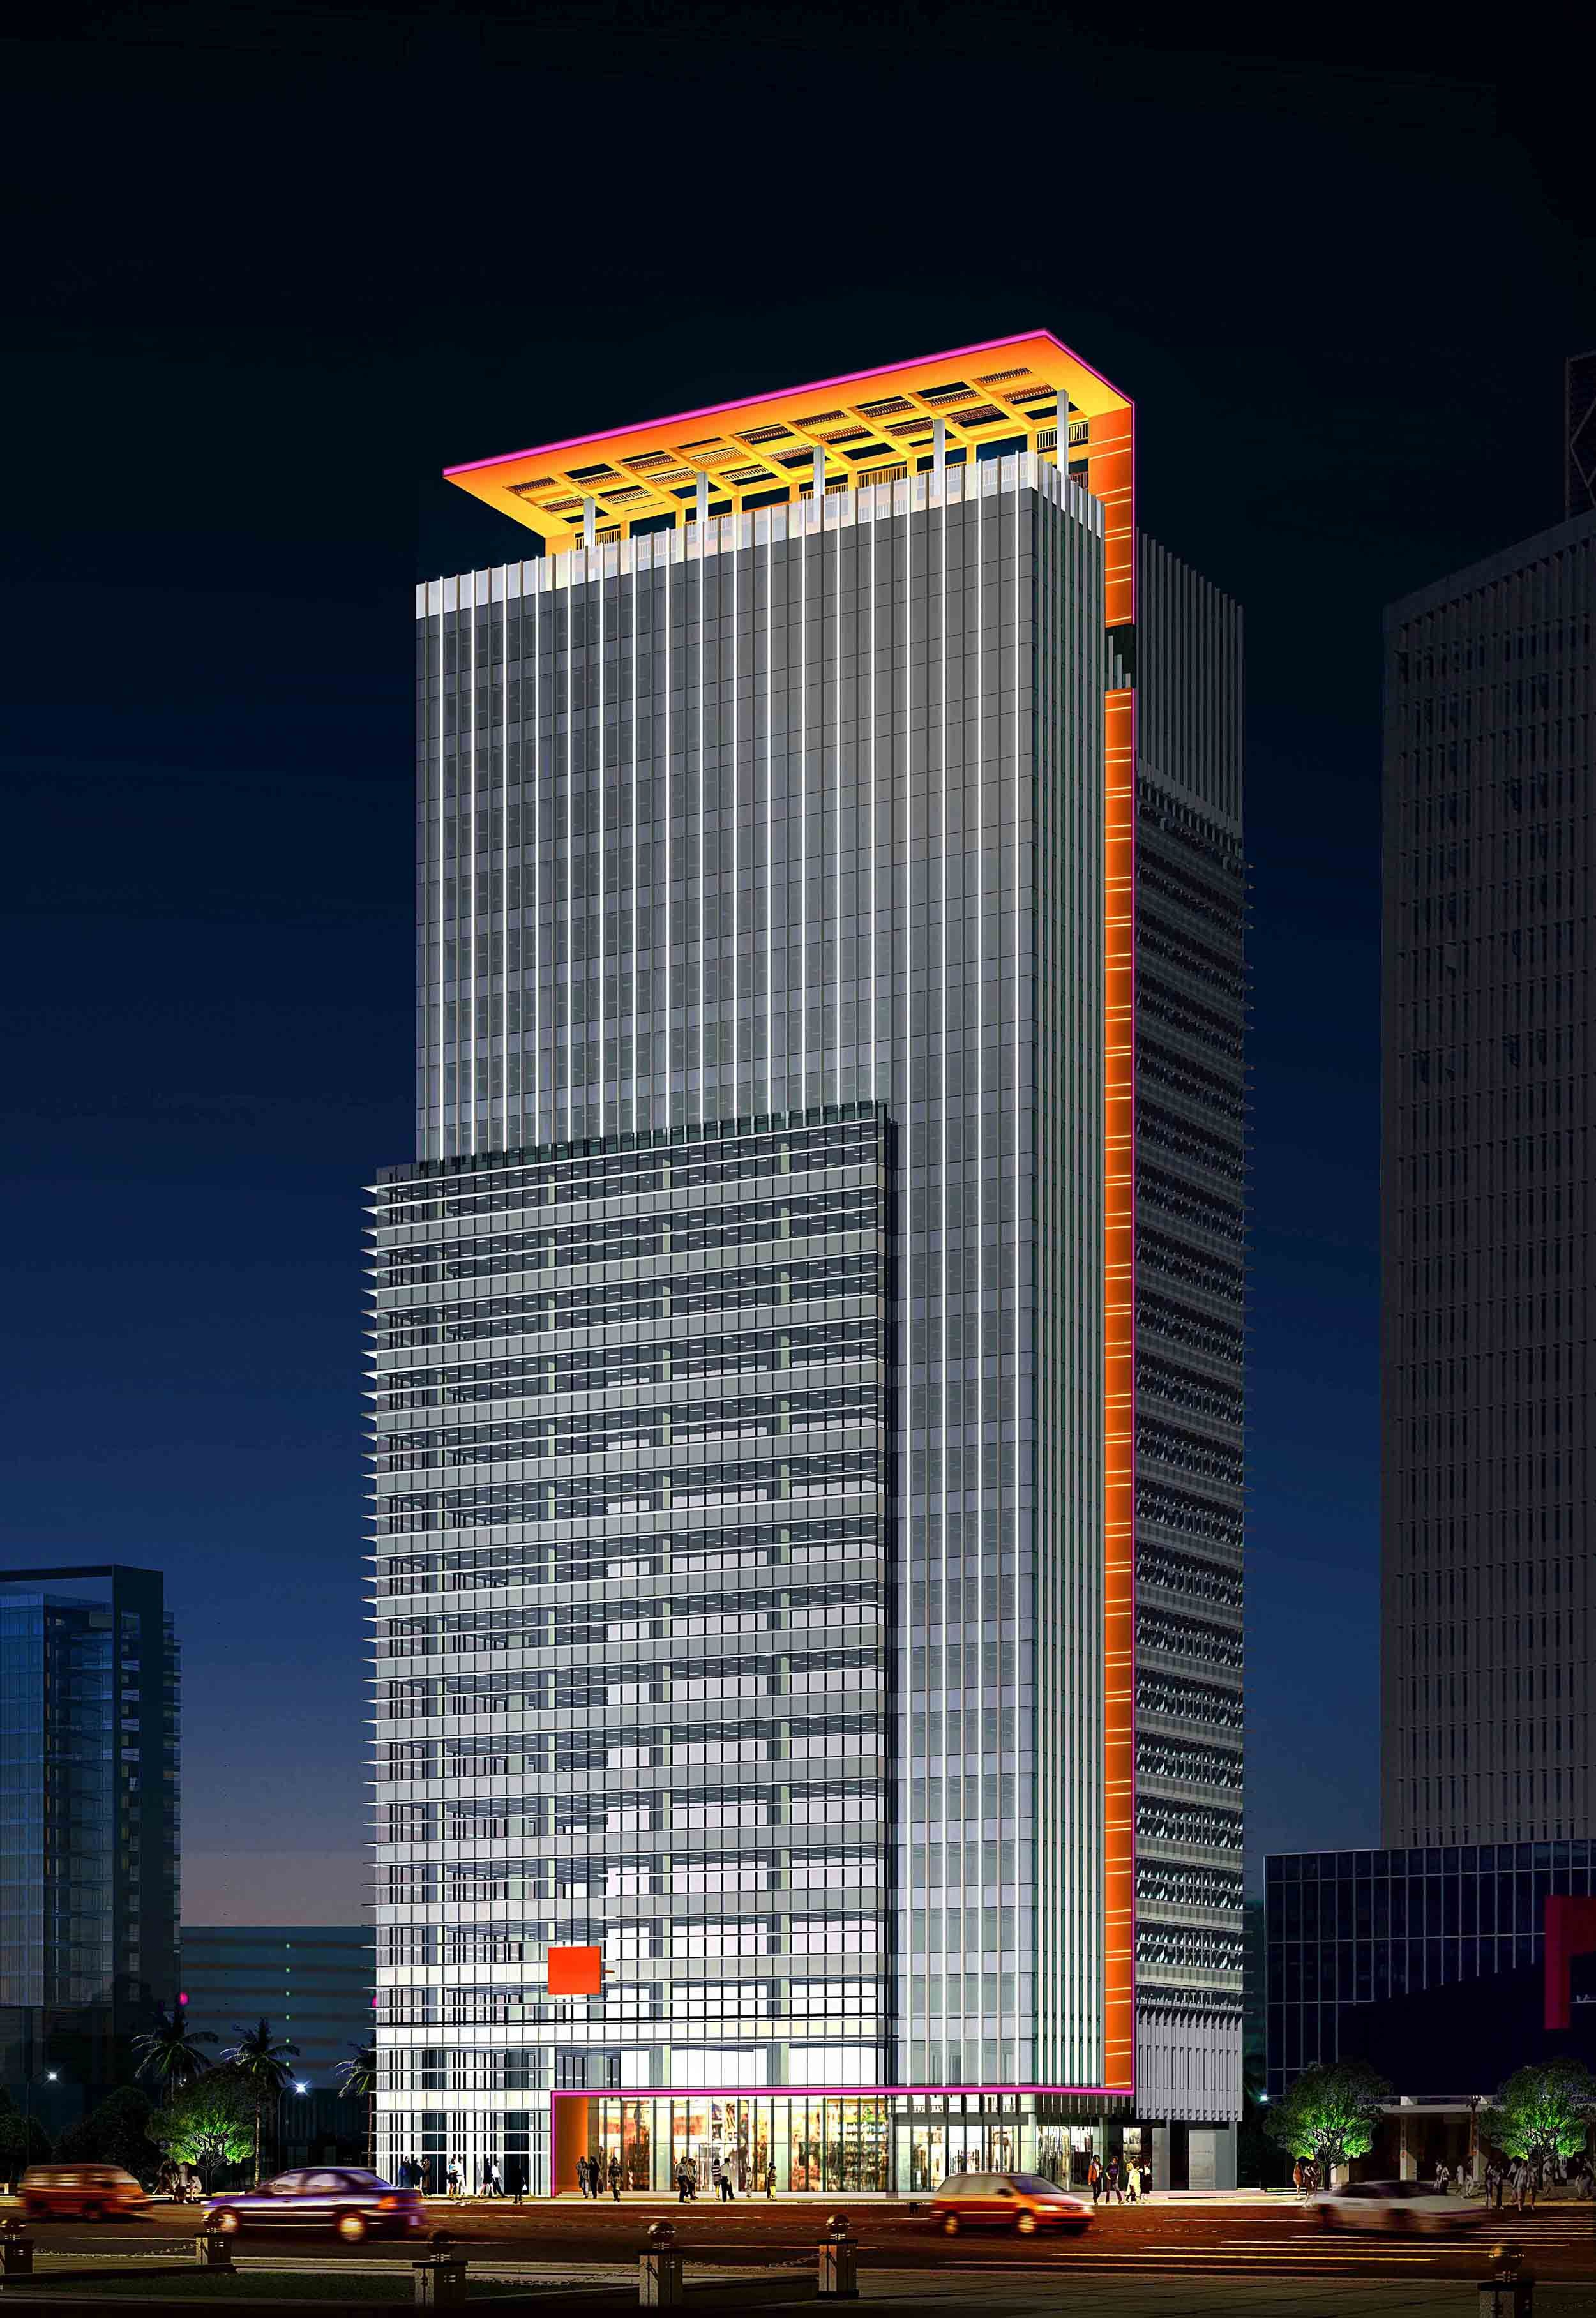 1000 images about office buildings on pinterest office buildings facades and building building facade lighting